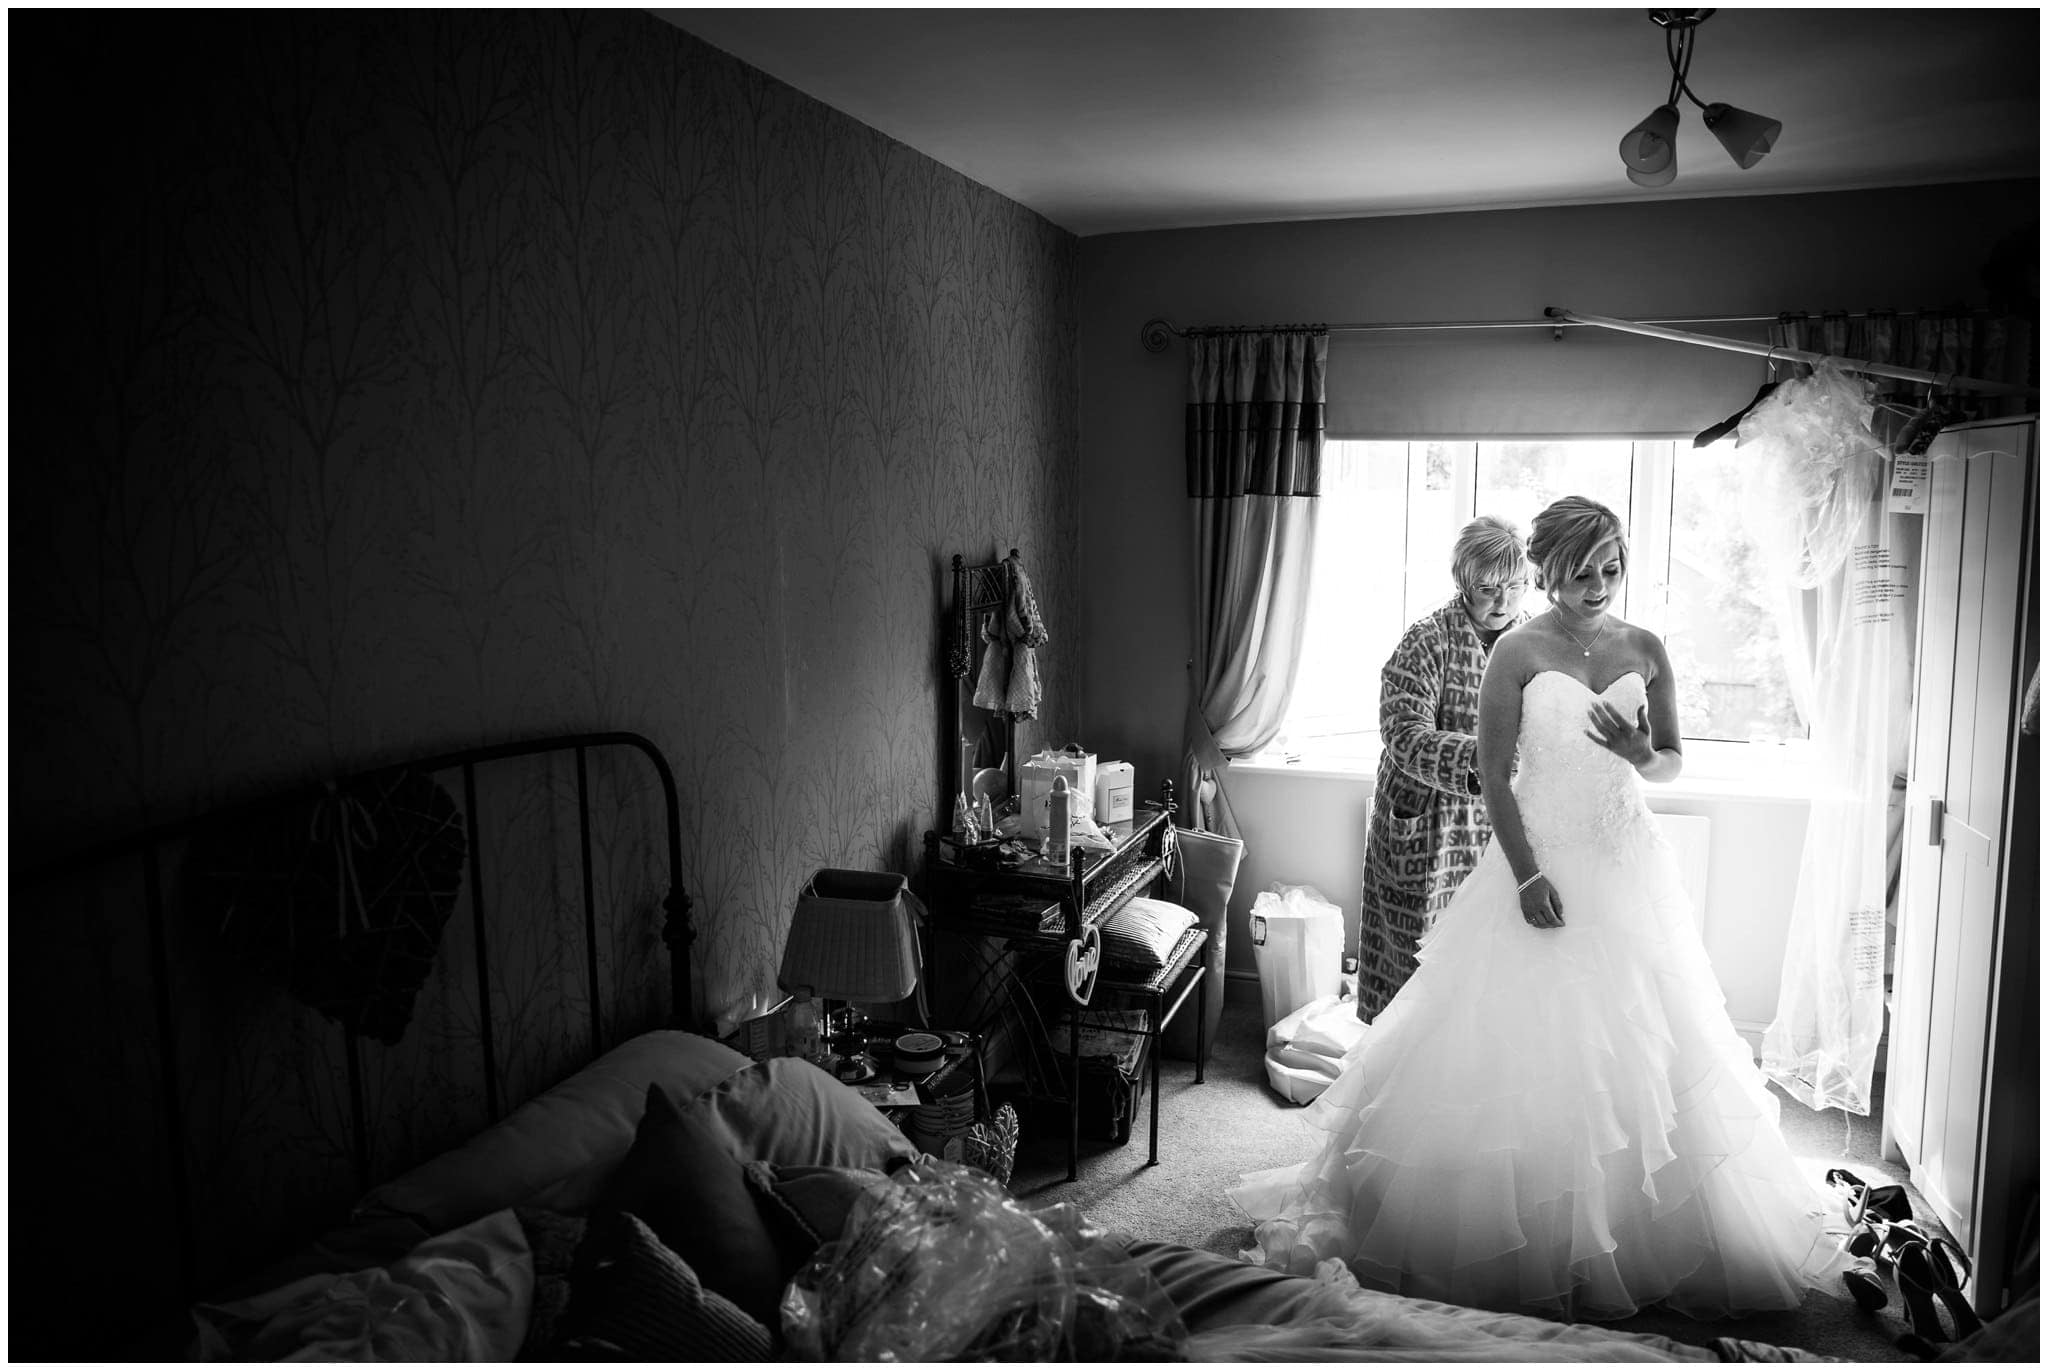 079-best-wedding-photos-2016